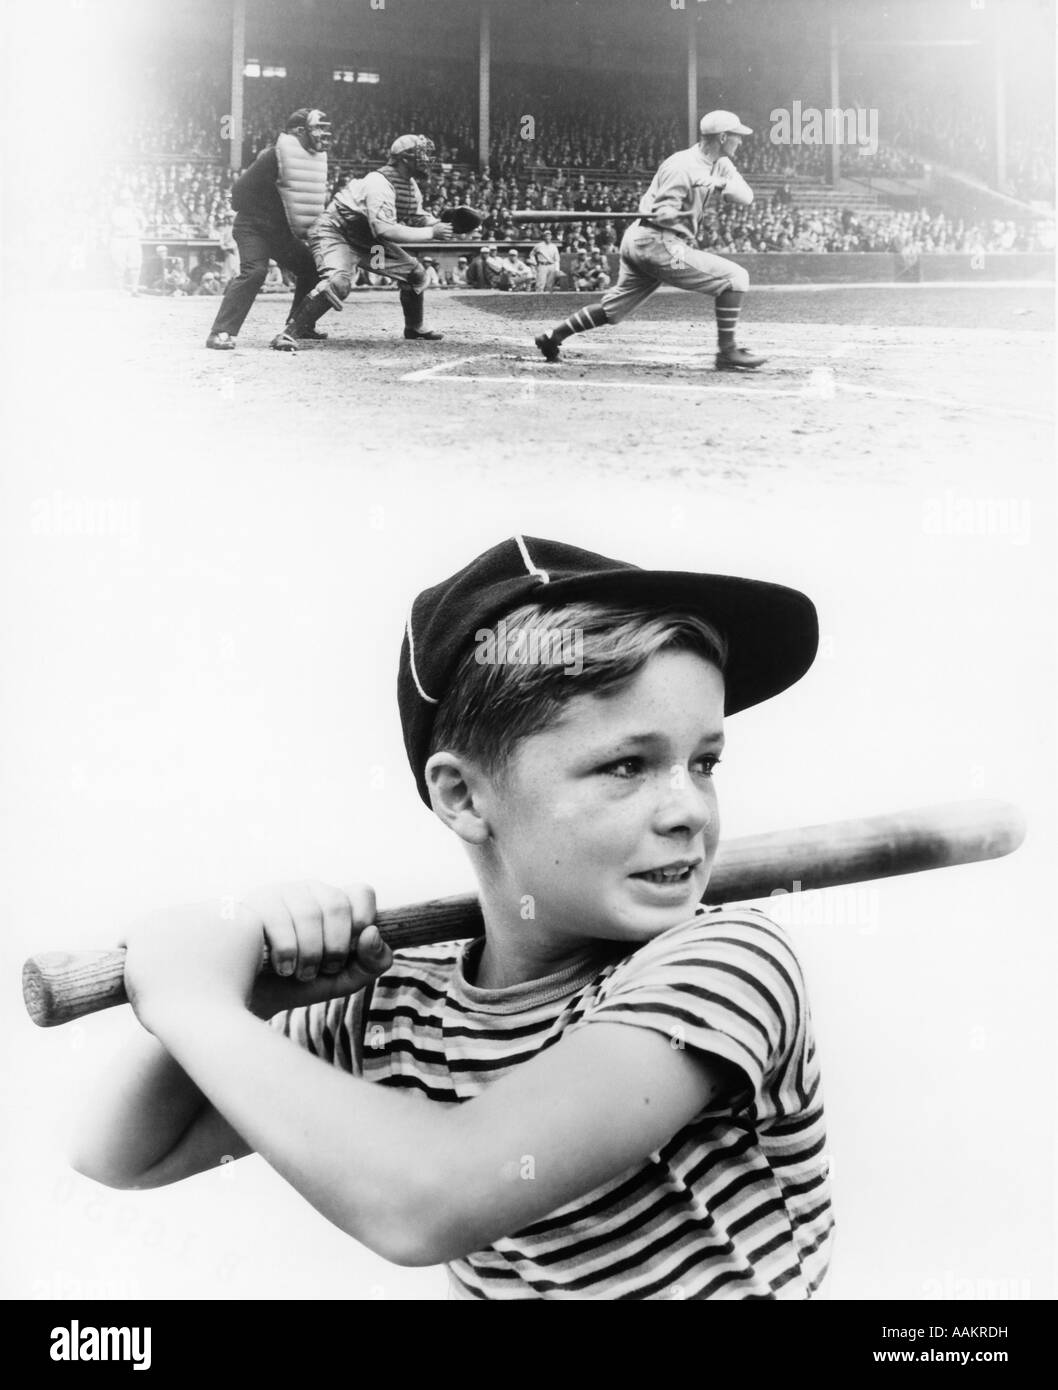 1930s MONTAGE OF BOY AT BAT WITH PROFESSIONAL BASEBALL GAME IN PROGRES - Stock Image